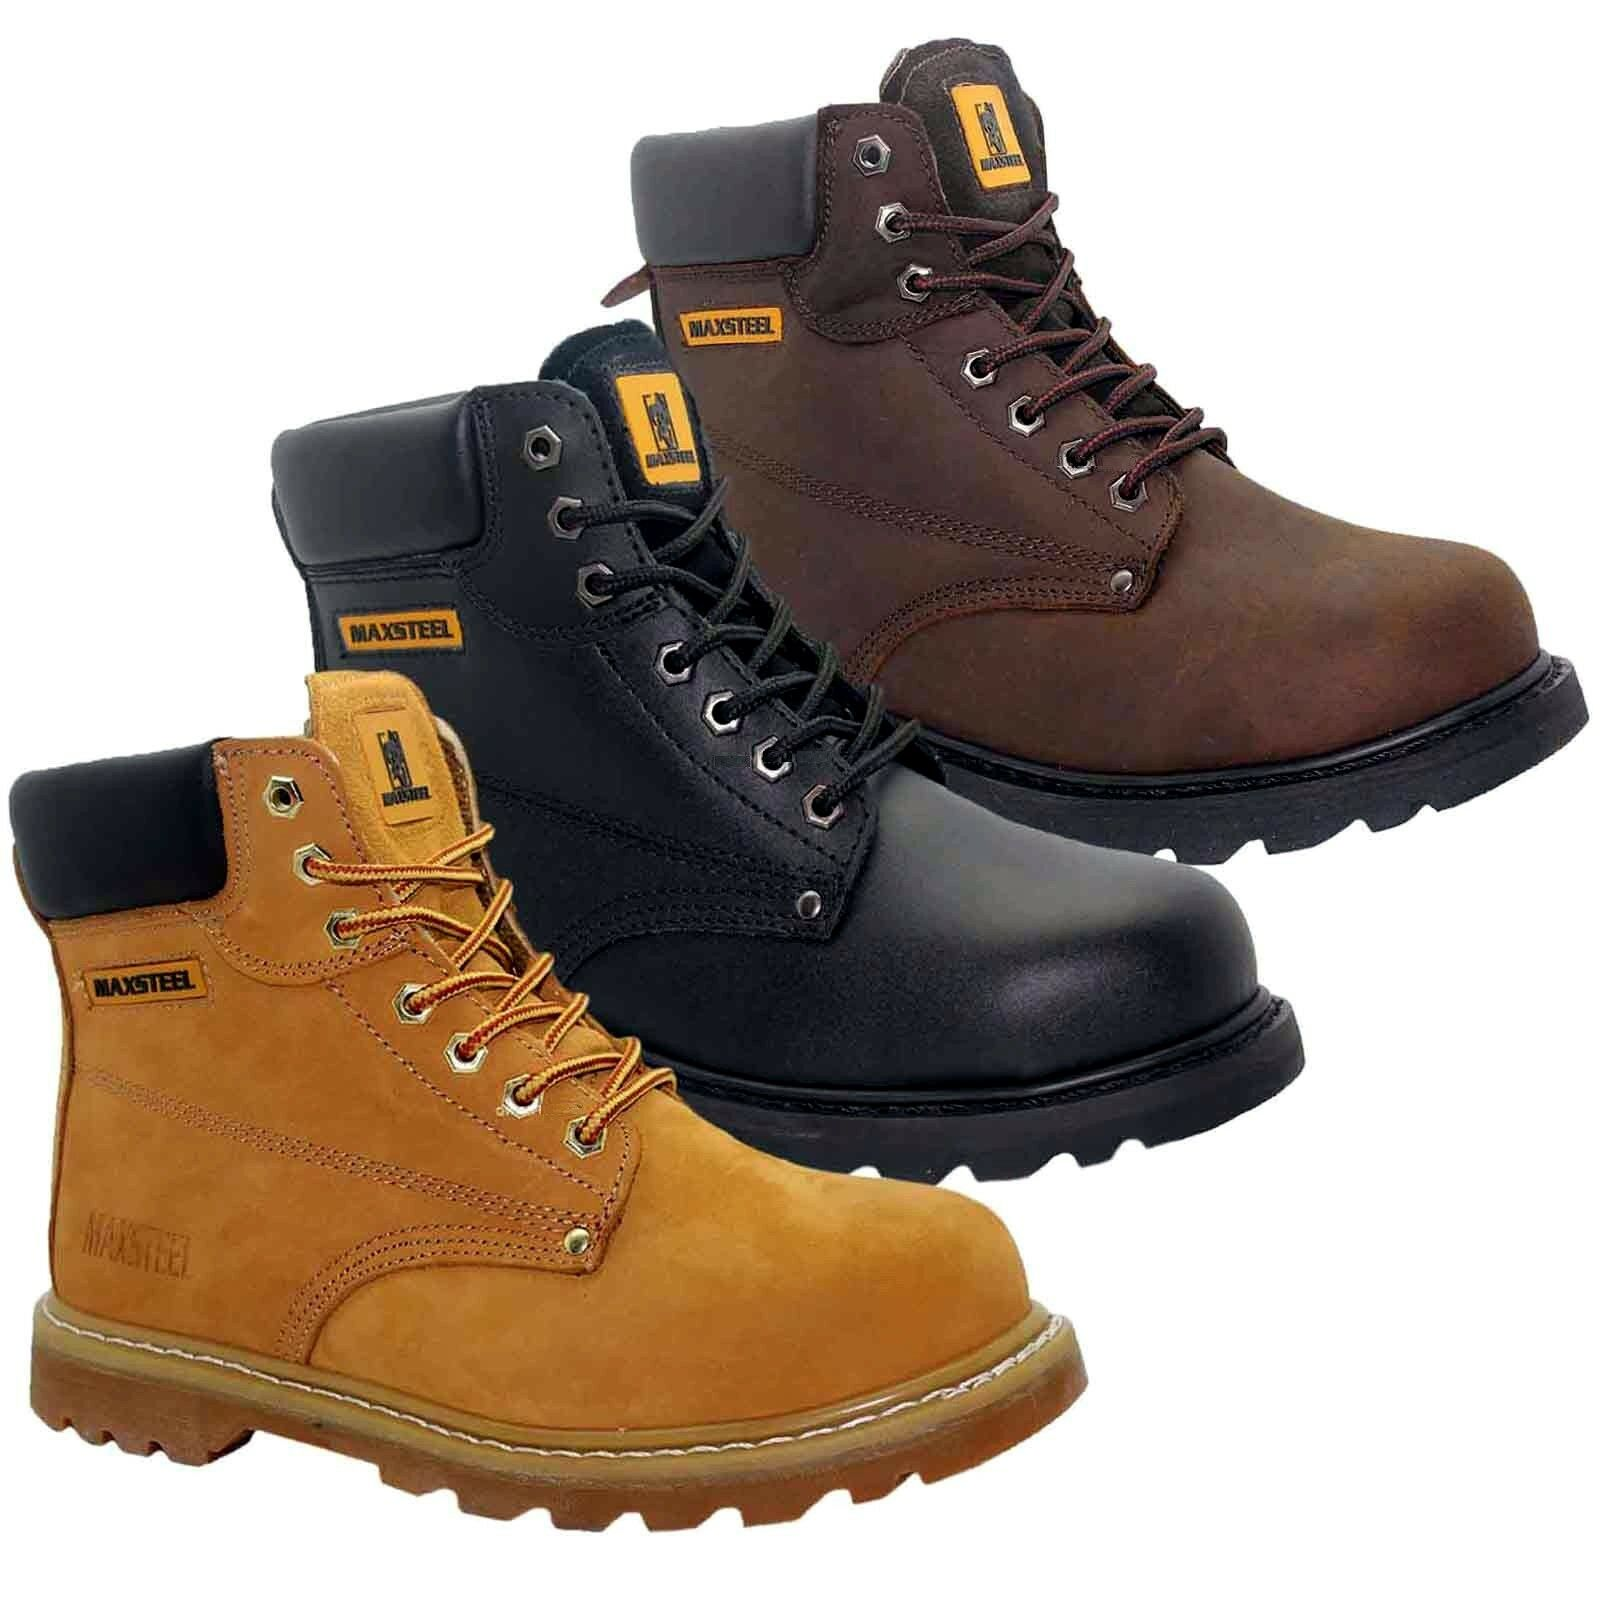 MENS NEW GOOD YEAR LEATHER LACE UP SAFETY STEEL TOE CAP ANKLE WORK BOOTS SHOES